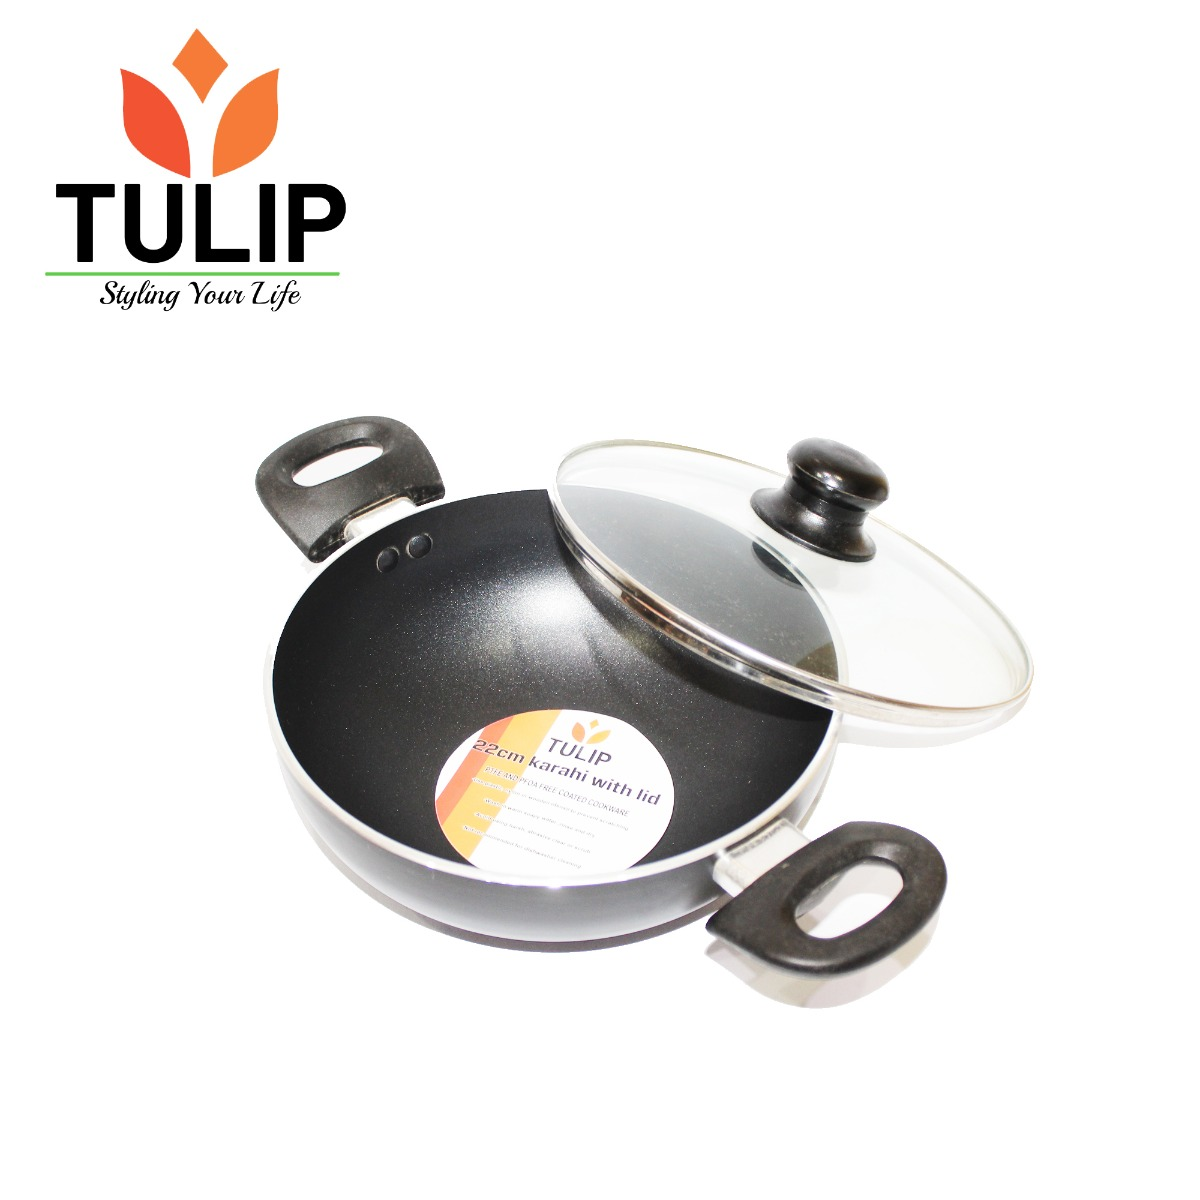 TULIP 26CM Non Stick Kadhai With Glass Lid - Black